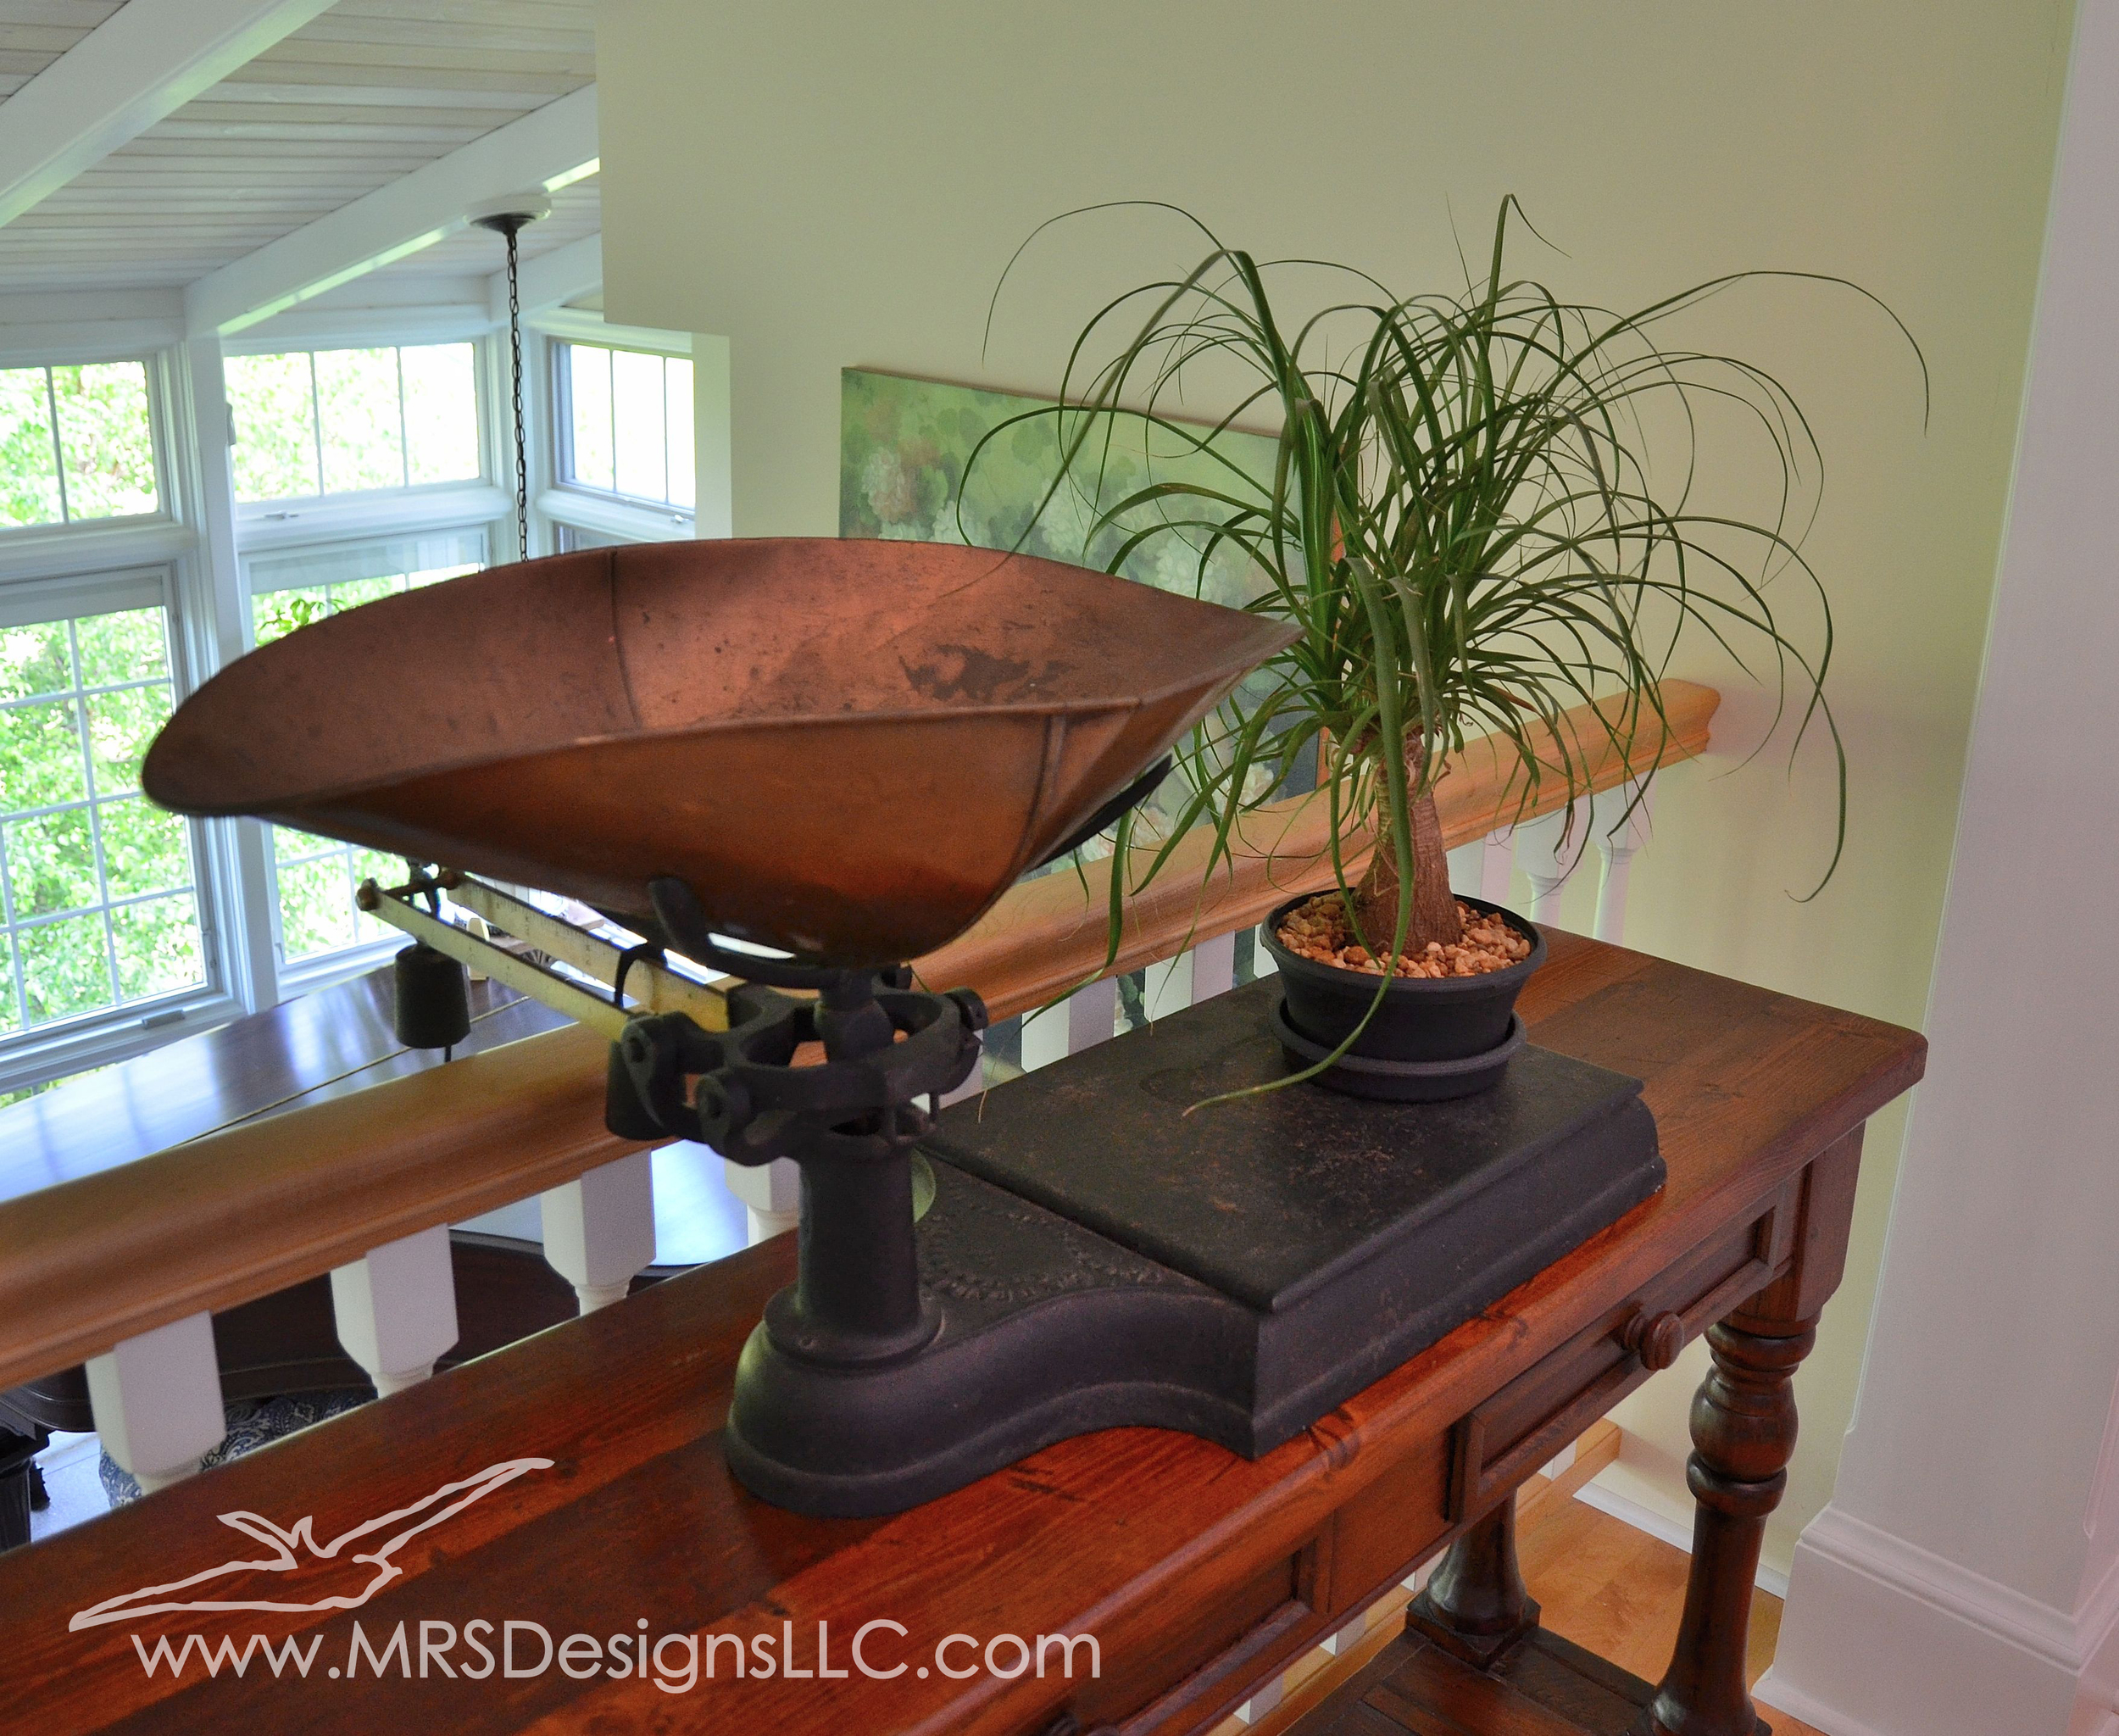 MRS Designs Blog - Using Vintage Scales to Decorate Your Home. Why not use a plant?